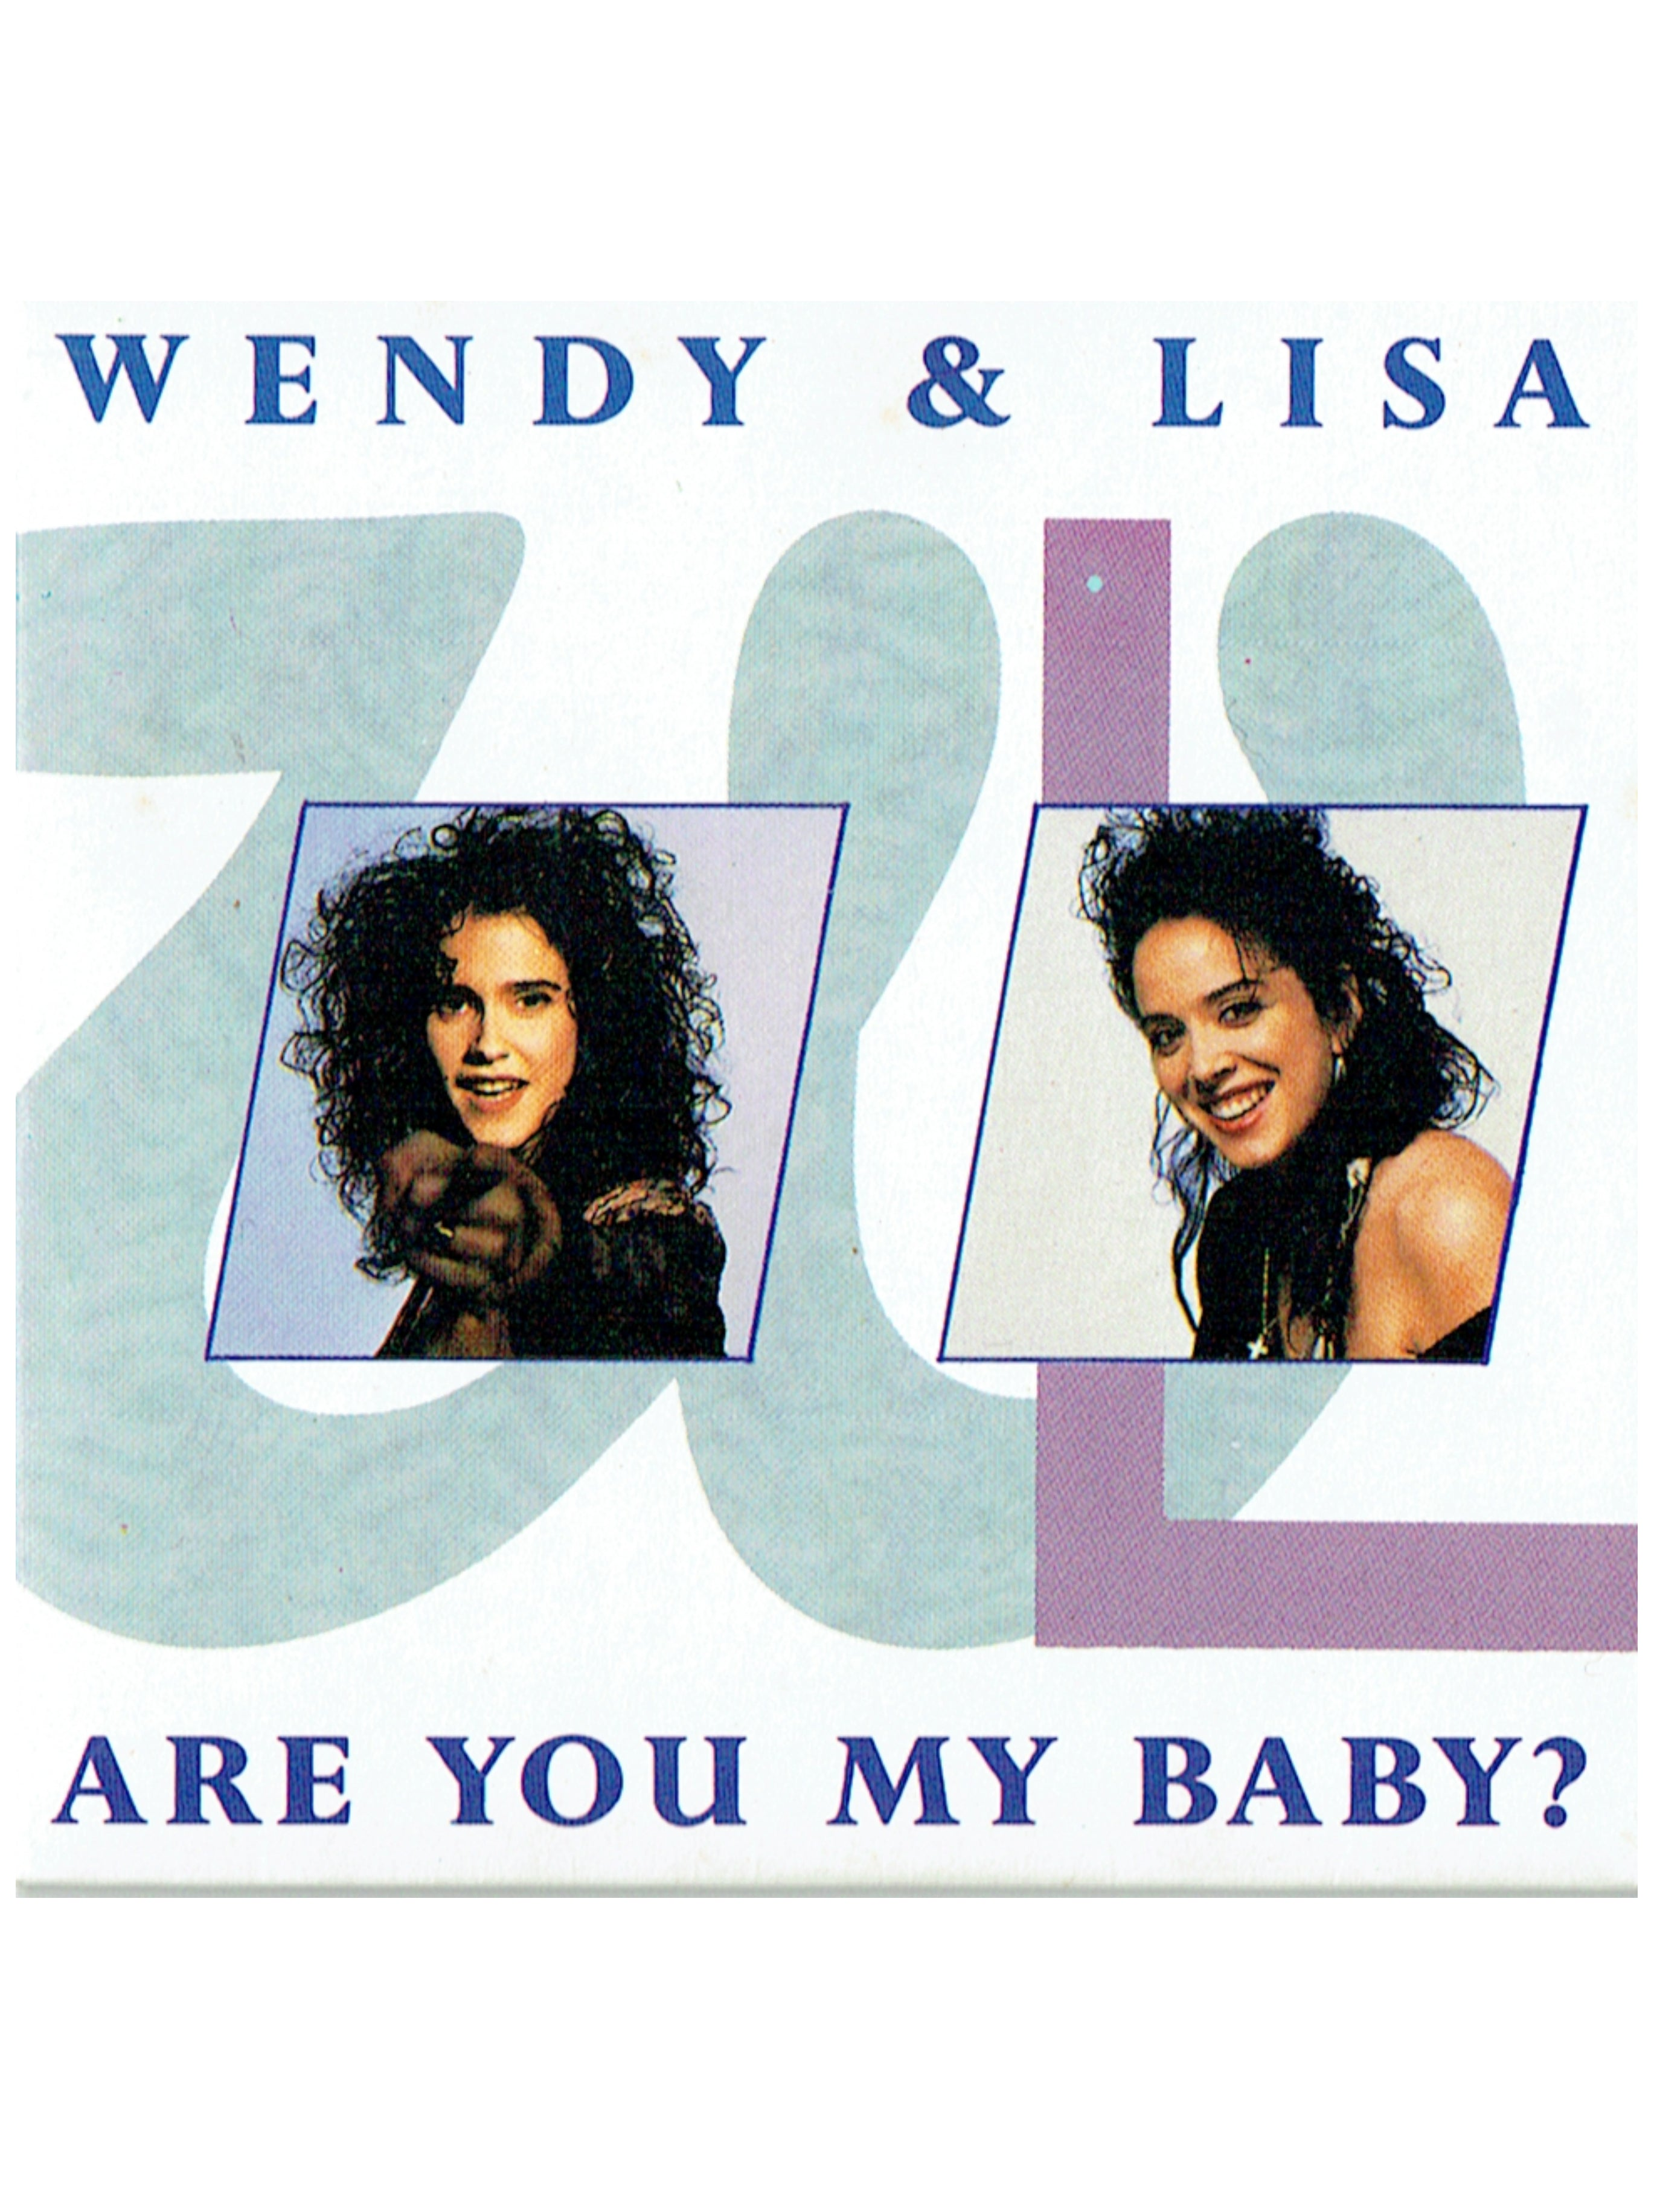 Wendy & Lisa Are You My Baby ? 4 Track CD Single 1987 Original Prince